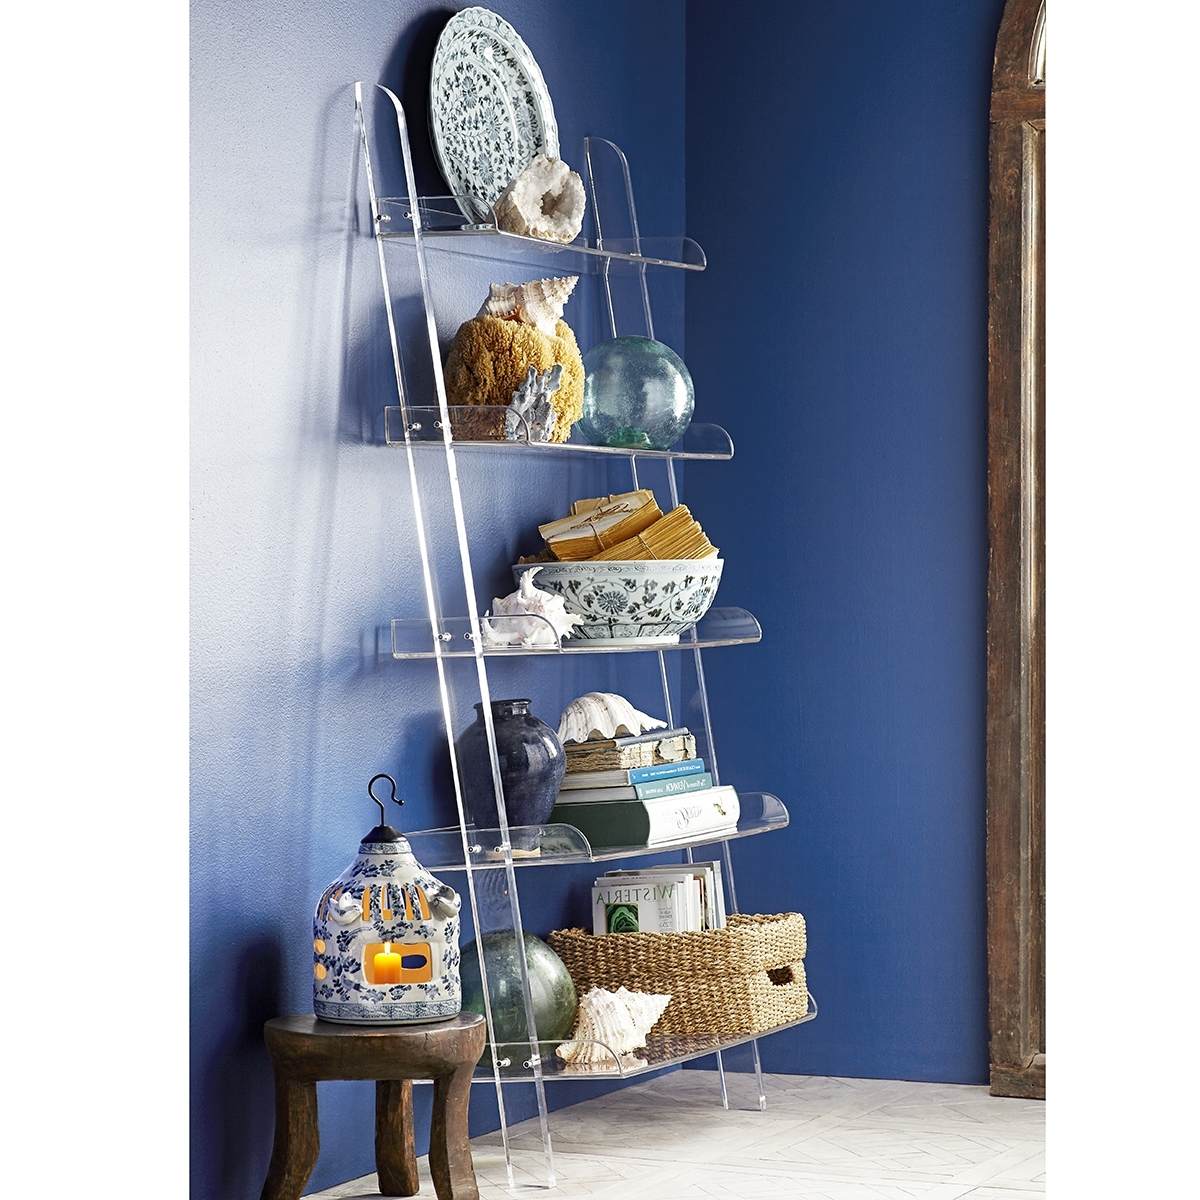 Acrylic Bookcases In Fashionable Acrylic Leaning Bookshelf (View 11 of 15)